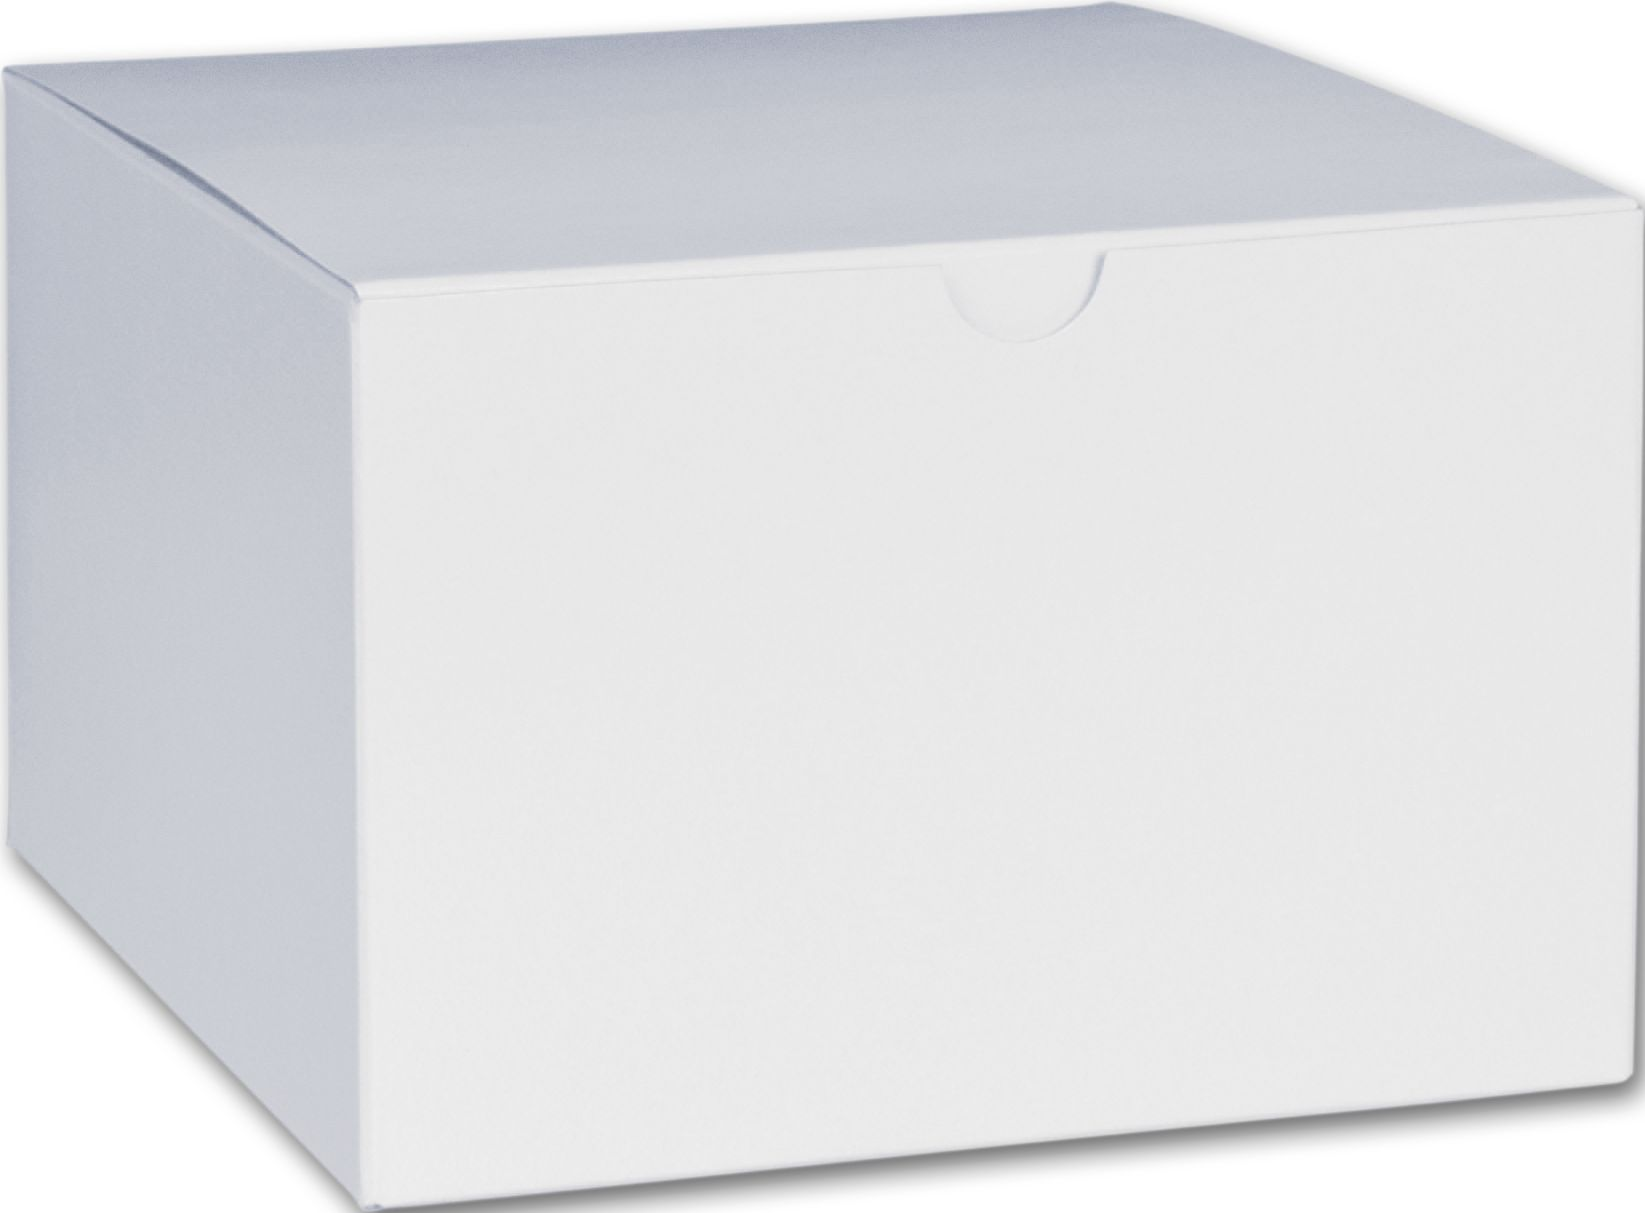 "White One-Piece Gift Boxes, 6 x 6 x 4"" (100 Boxes) - BOWS-250-060604C-9"